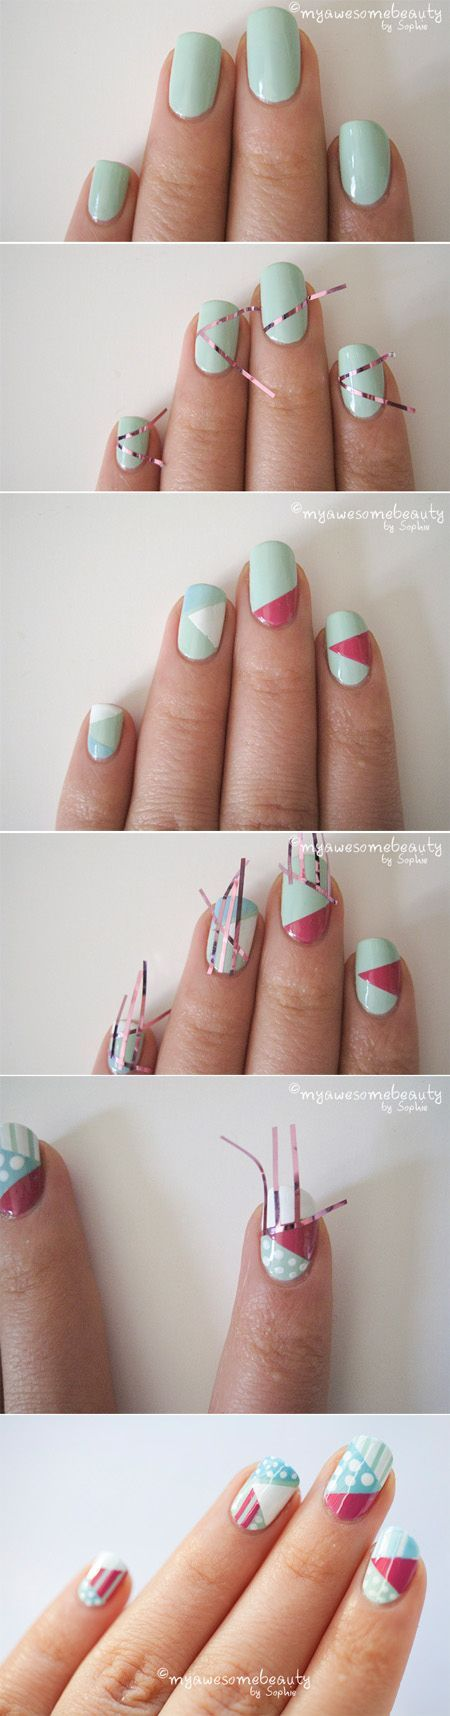 These days, merely painting your nails red isn't really enough anymore; there are some brilliantly artistic and creative designs out there to transform your nail painting into real nail art. Of cou…